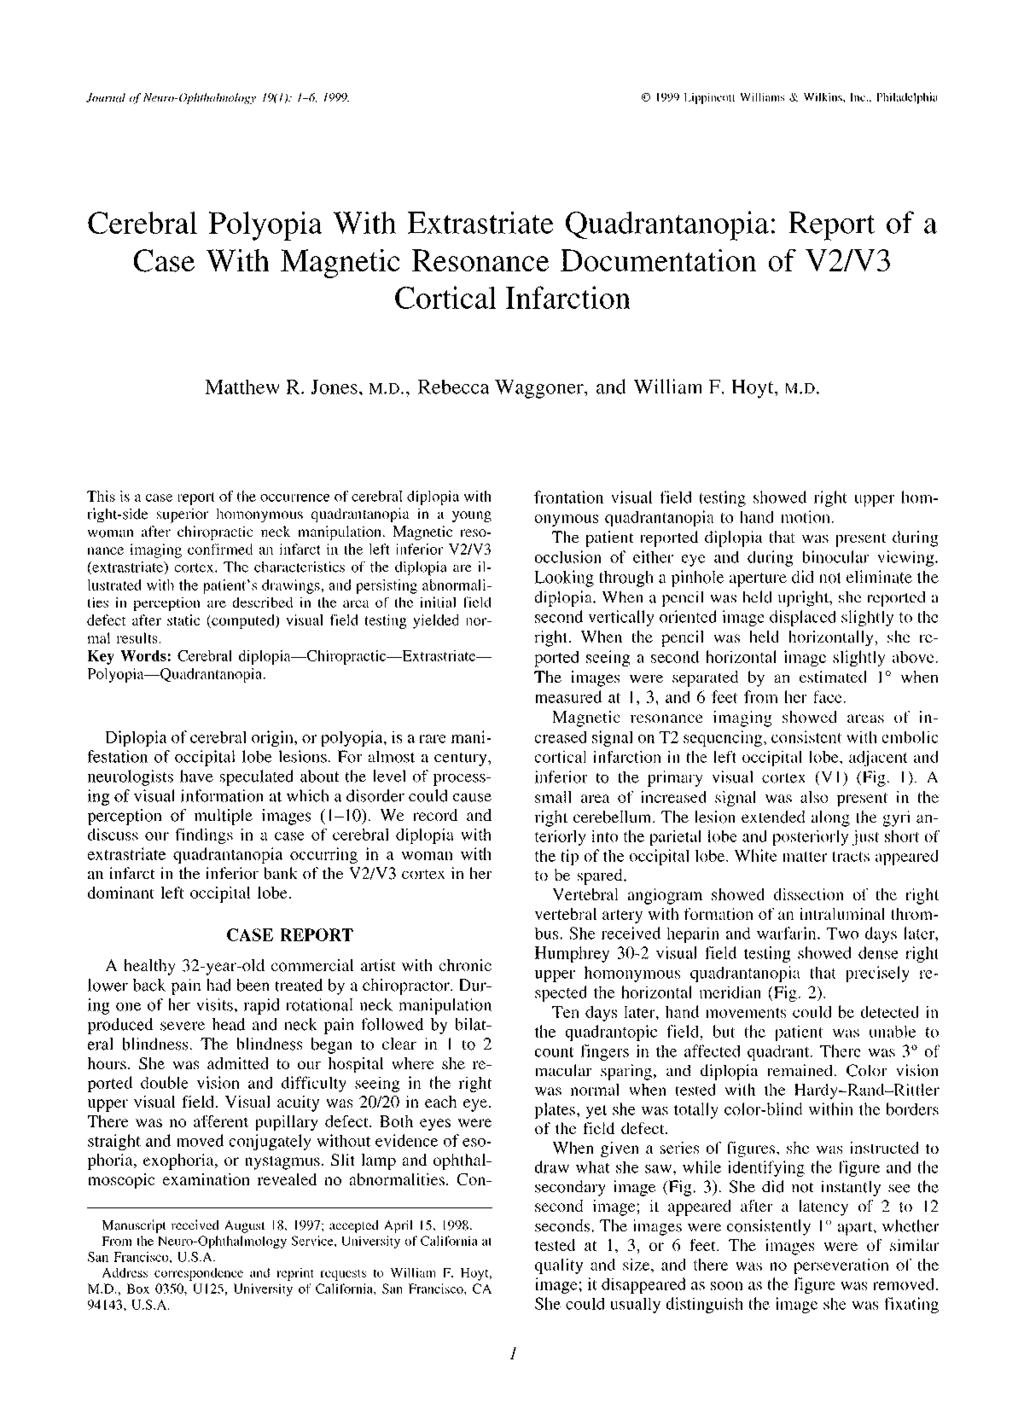 Cerebral Polyopia With Extrastriate Quadrantanopia: Report